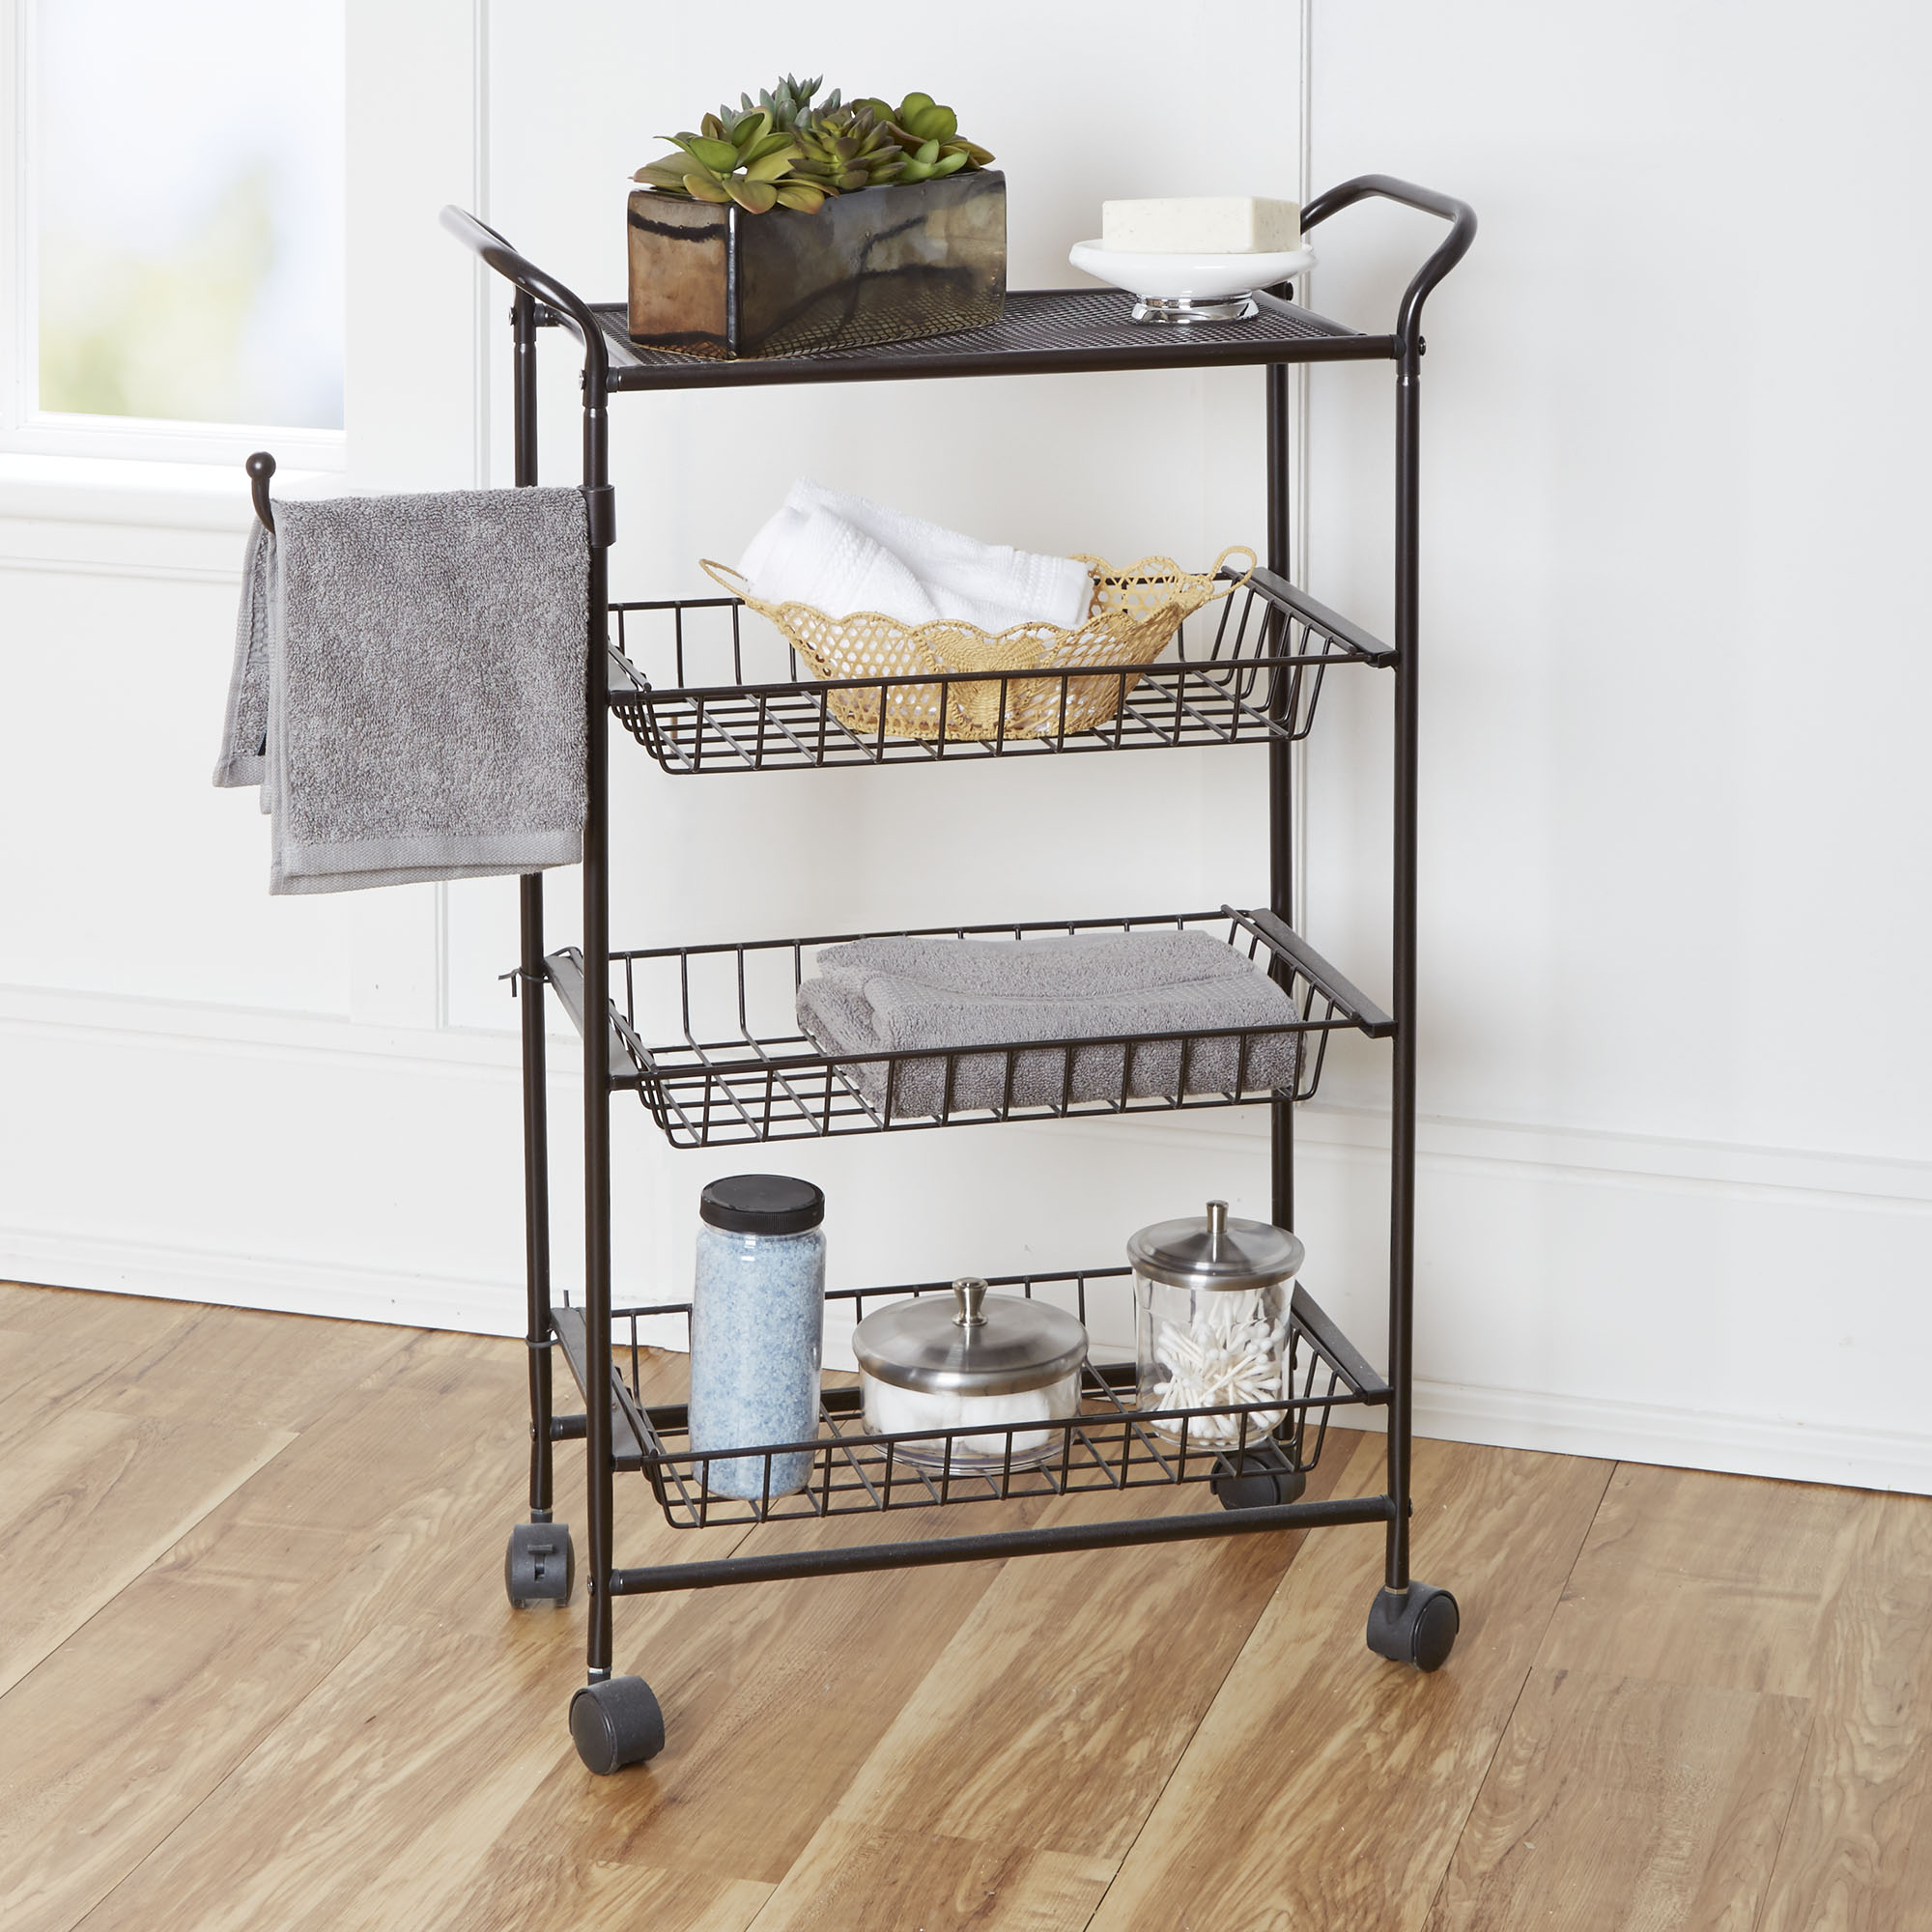 Chapter Bathroom Storage Cart with Towel Hook OilRubbed